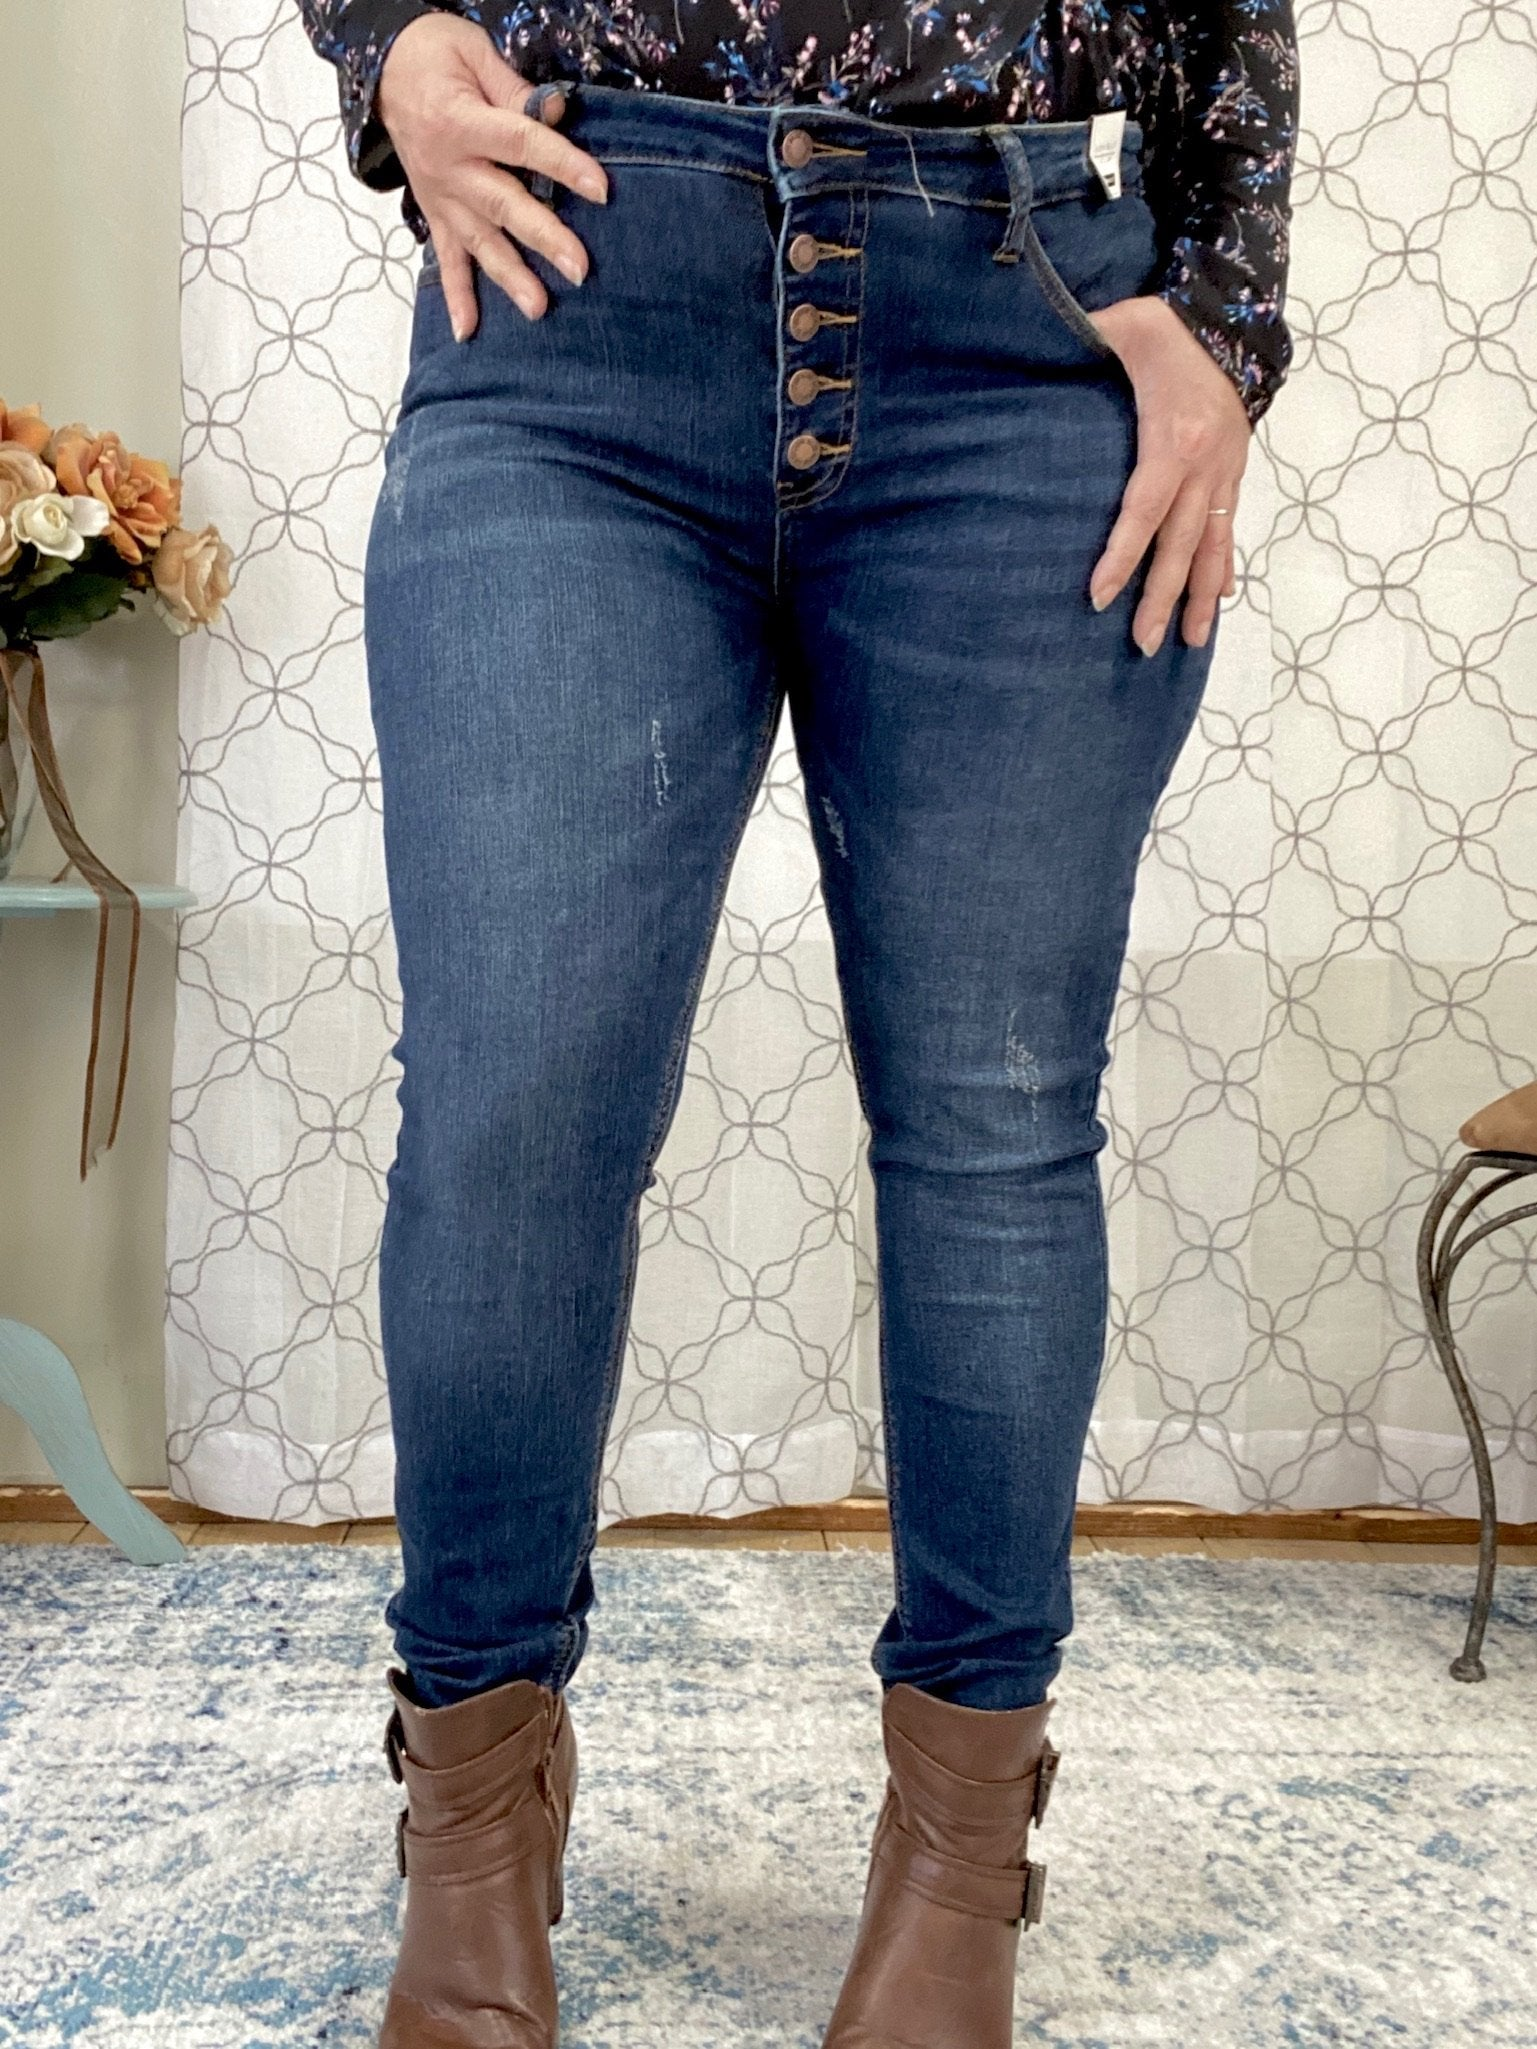 "Judy Blue Button Fly High Rise Skinny Jeans in a dark wash. 28.5"" Inseam Rise: Mid-Rise. 9"" Front Rise Material: 71% COTTON / 21% RAYON / 7% POLYESTER / 1% LYCRA Machine Wash Separately In Cold Water Stitching: Fly: Exposed Button Fly Style #: JB8855 , 8855 Model Alexis is wearing her true Judy Blue size 11"